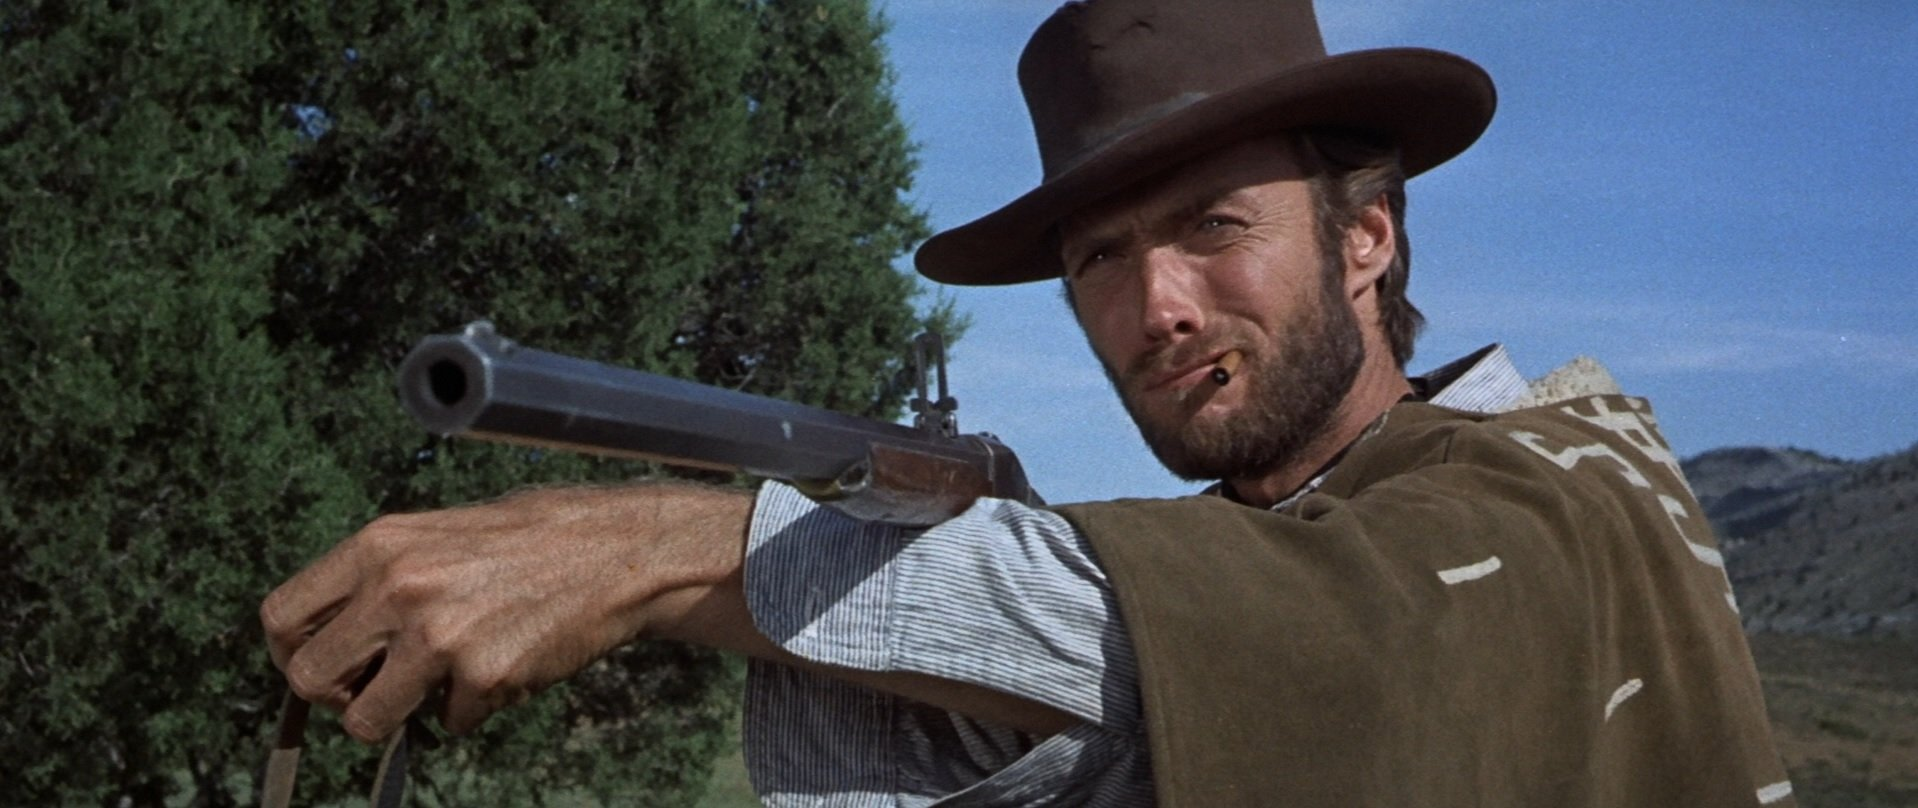 Clint Eastwood  Biography Filmography and Lots More